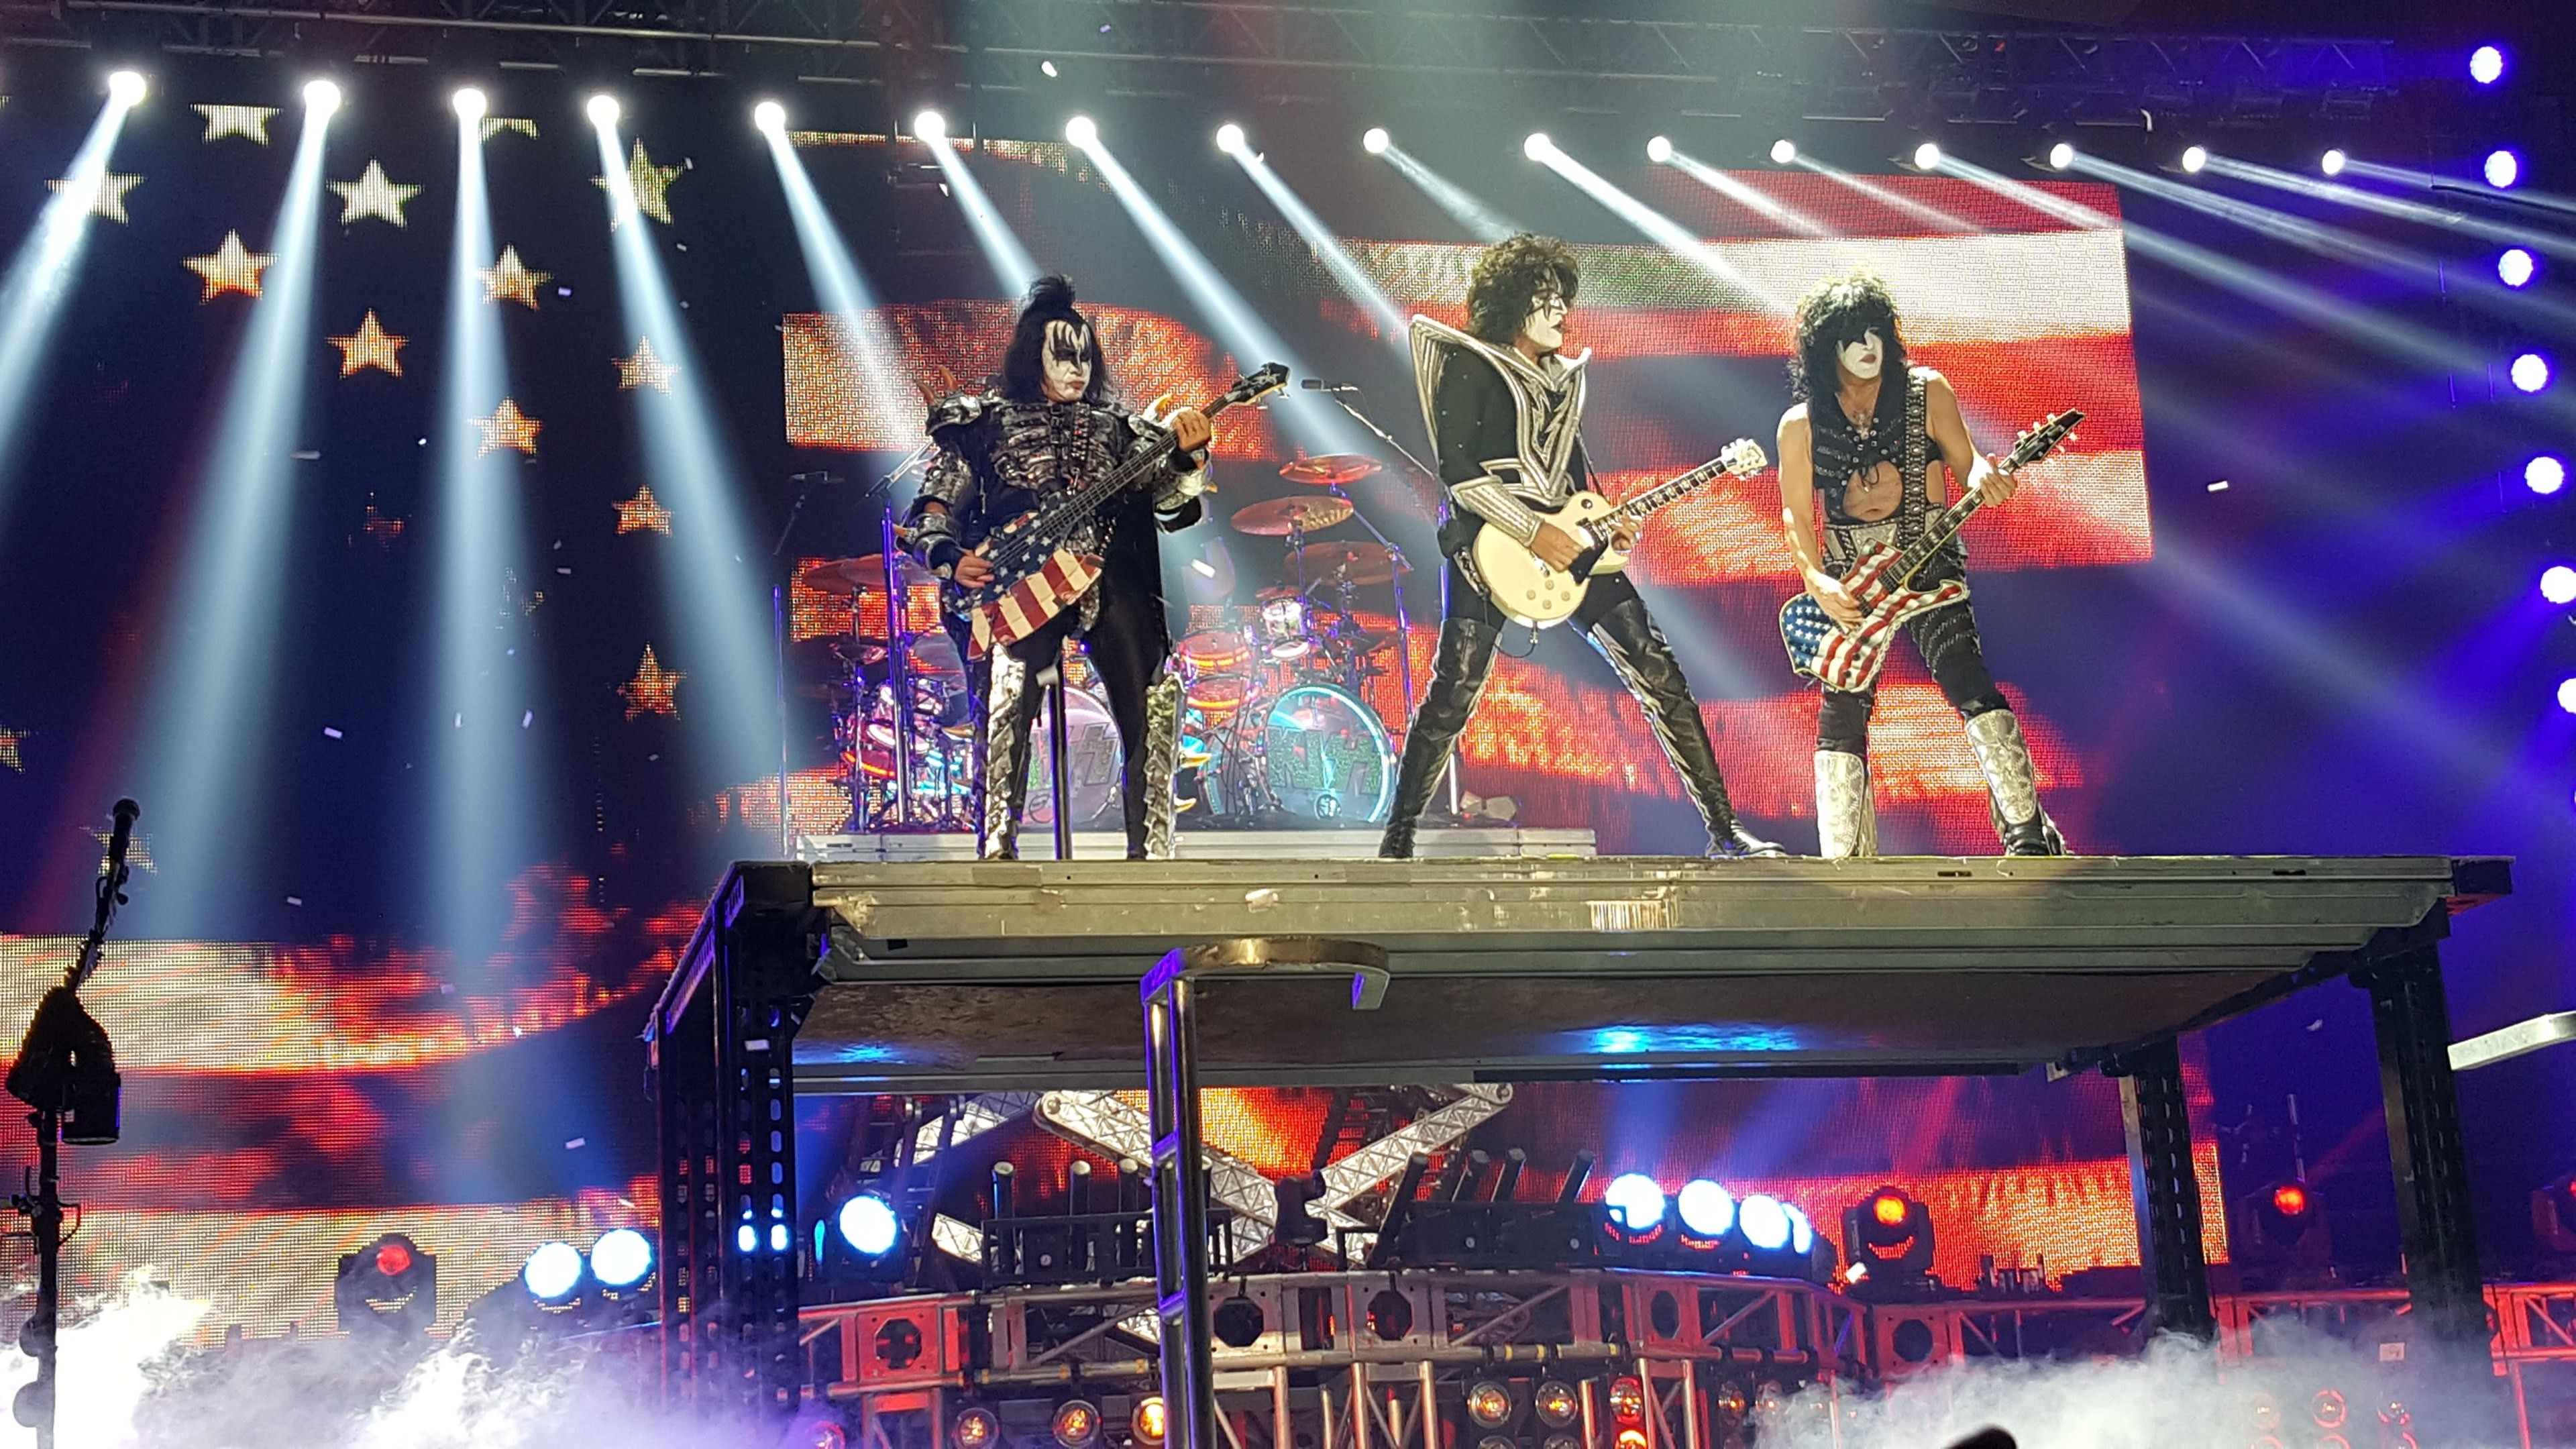 3840x2160 # the band kiss wearing stage make up performing in front of a  large american flag displayed on a screenkiss at huntington center toledo  ohio 2016 ...